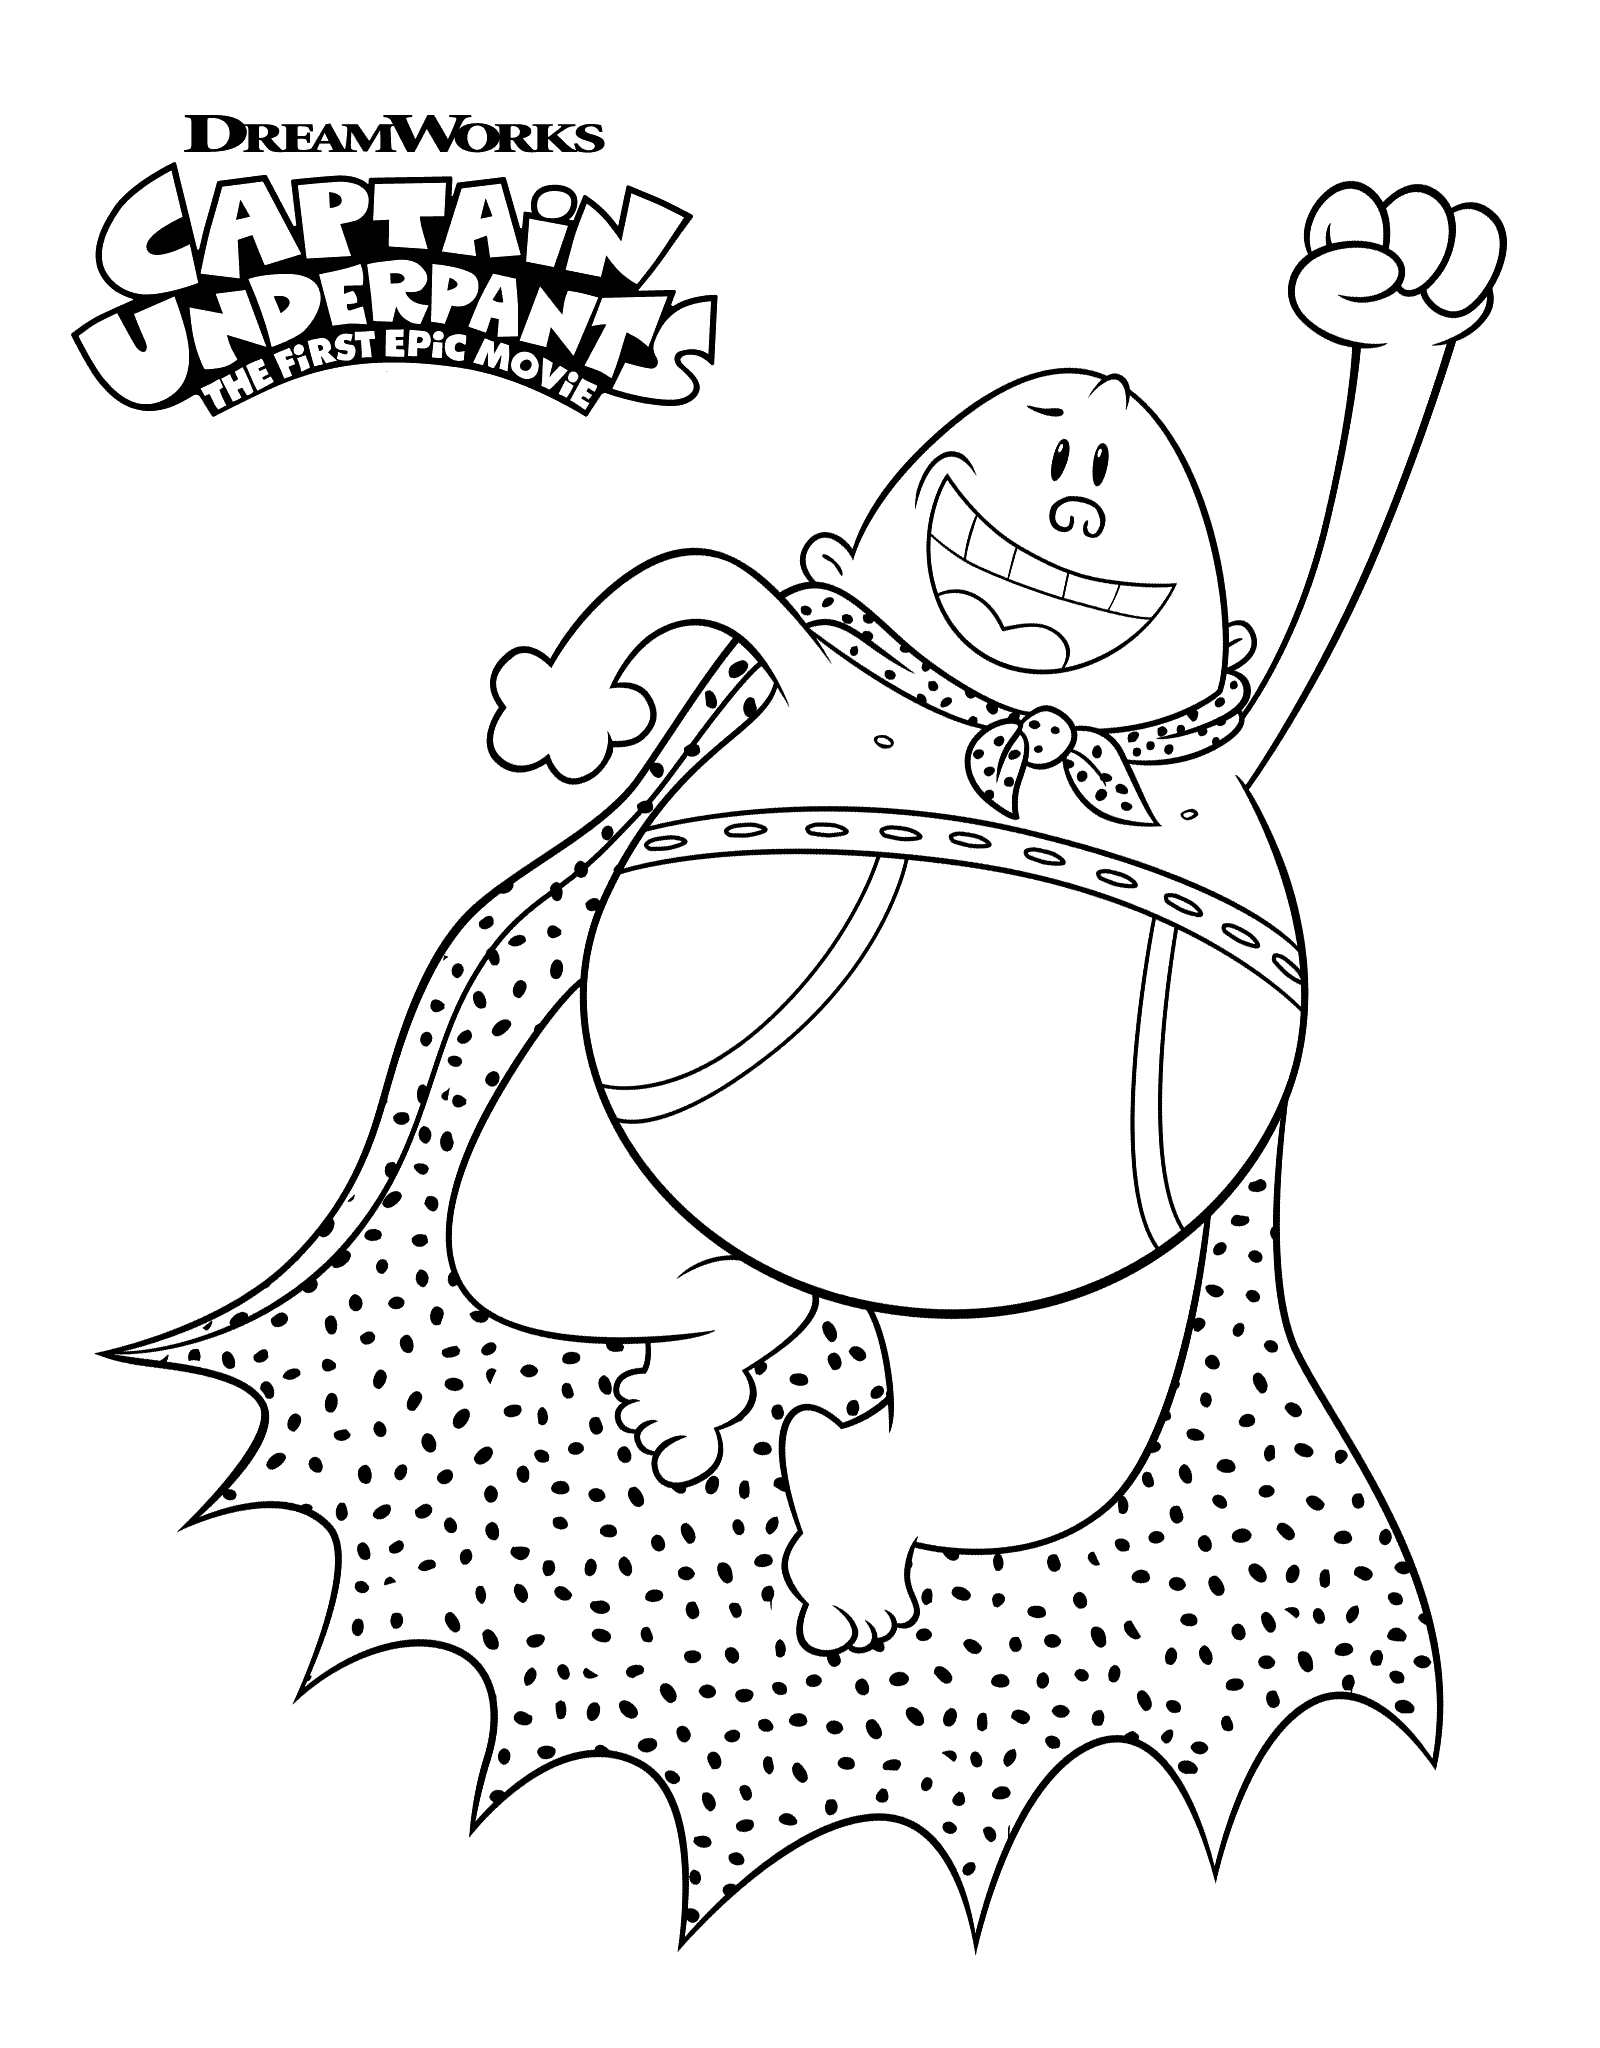 Flying Captain Underpants Coloring Pages Printable